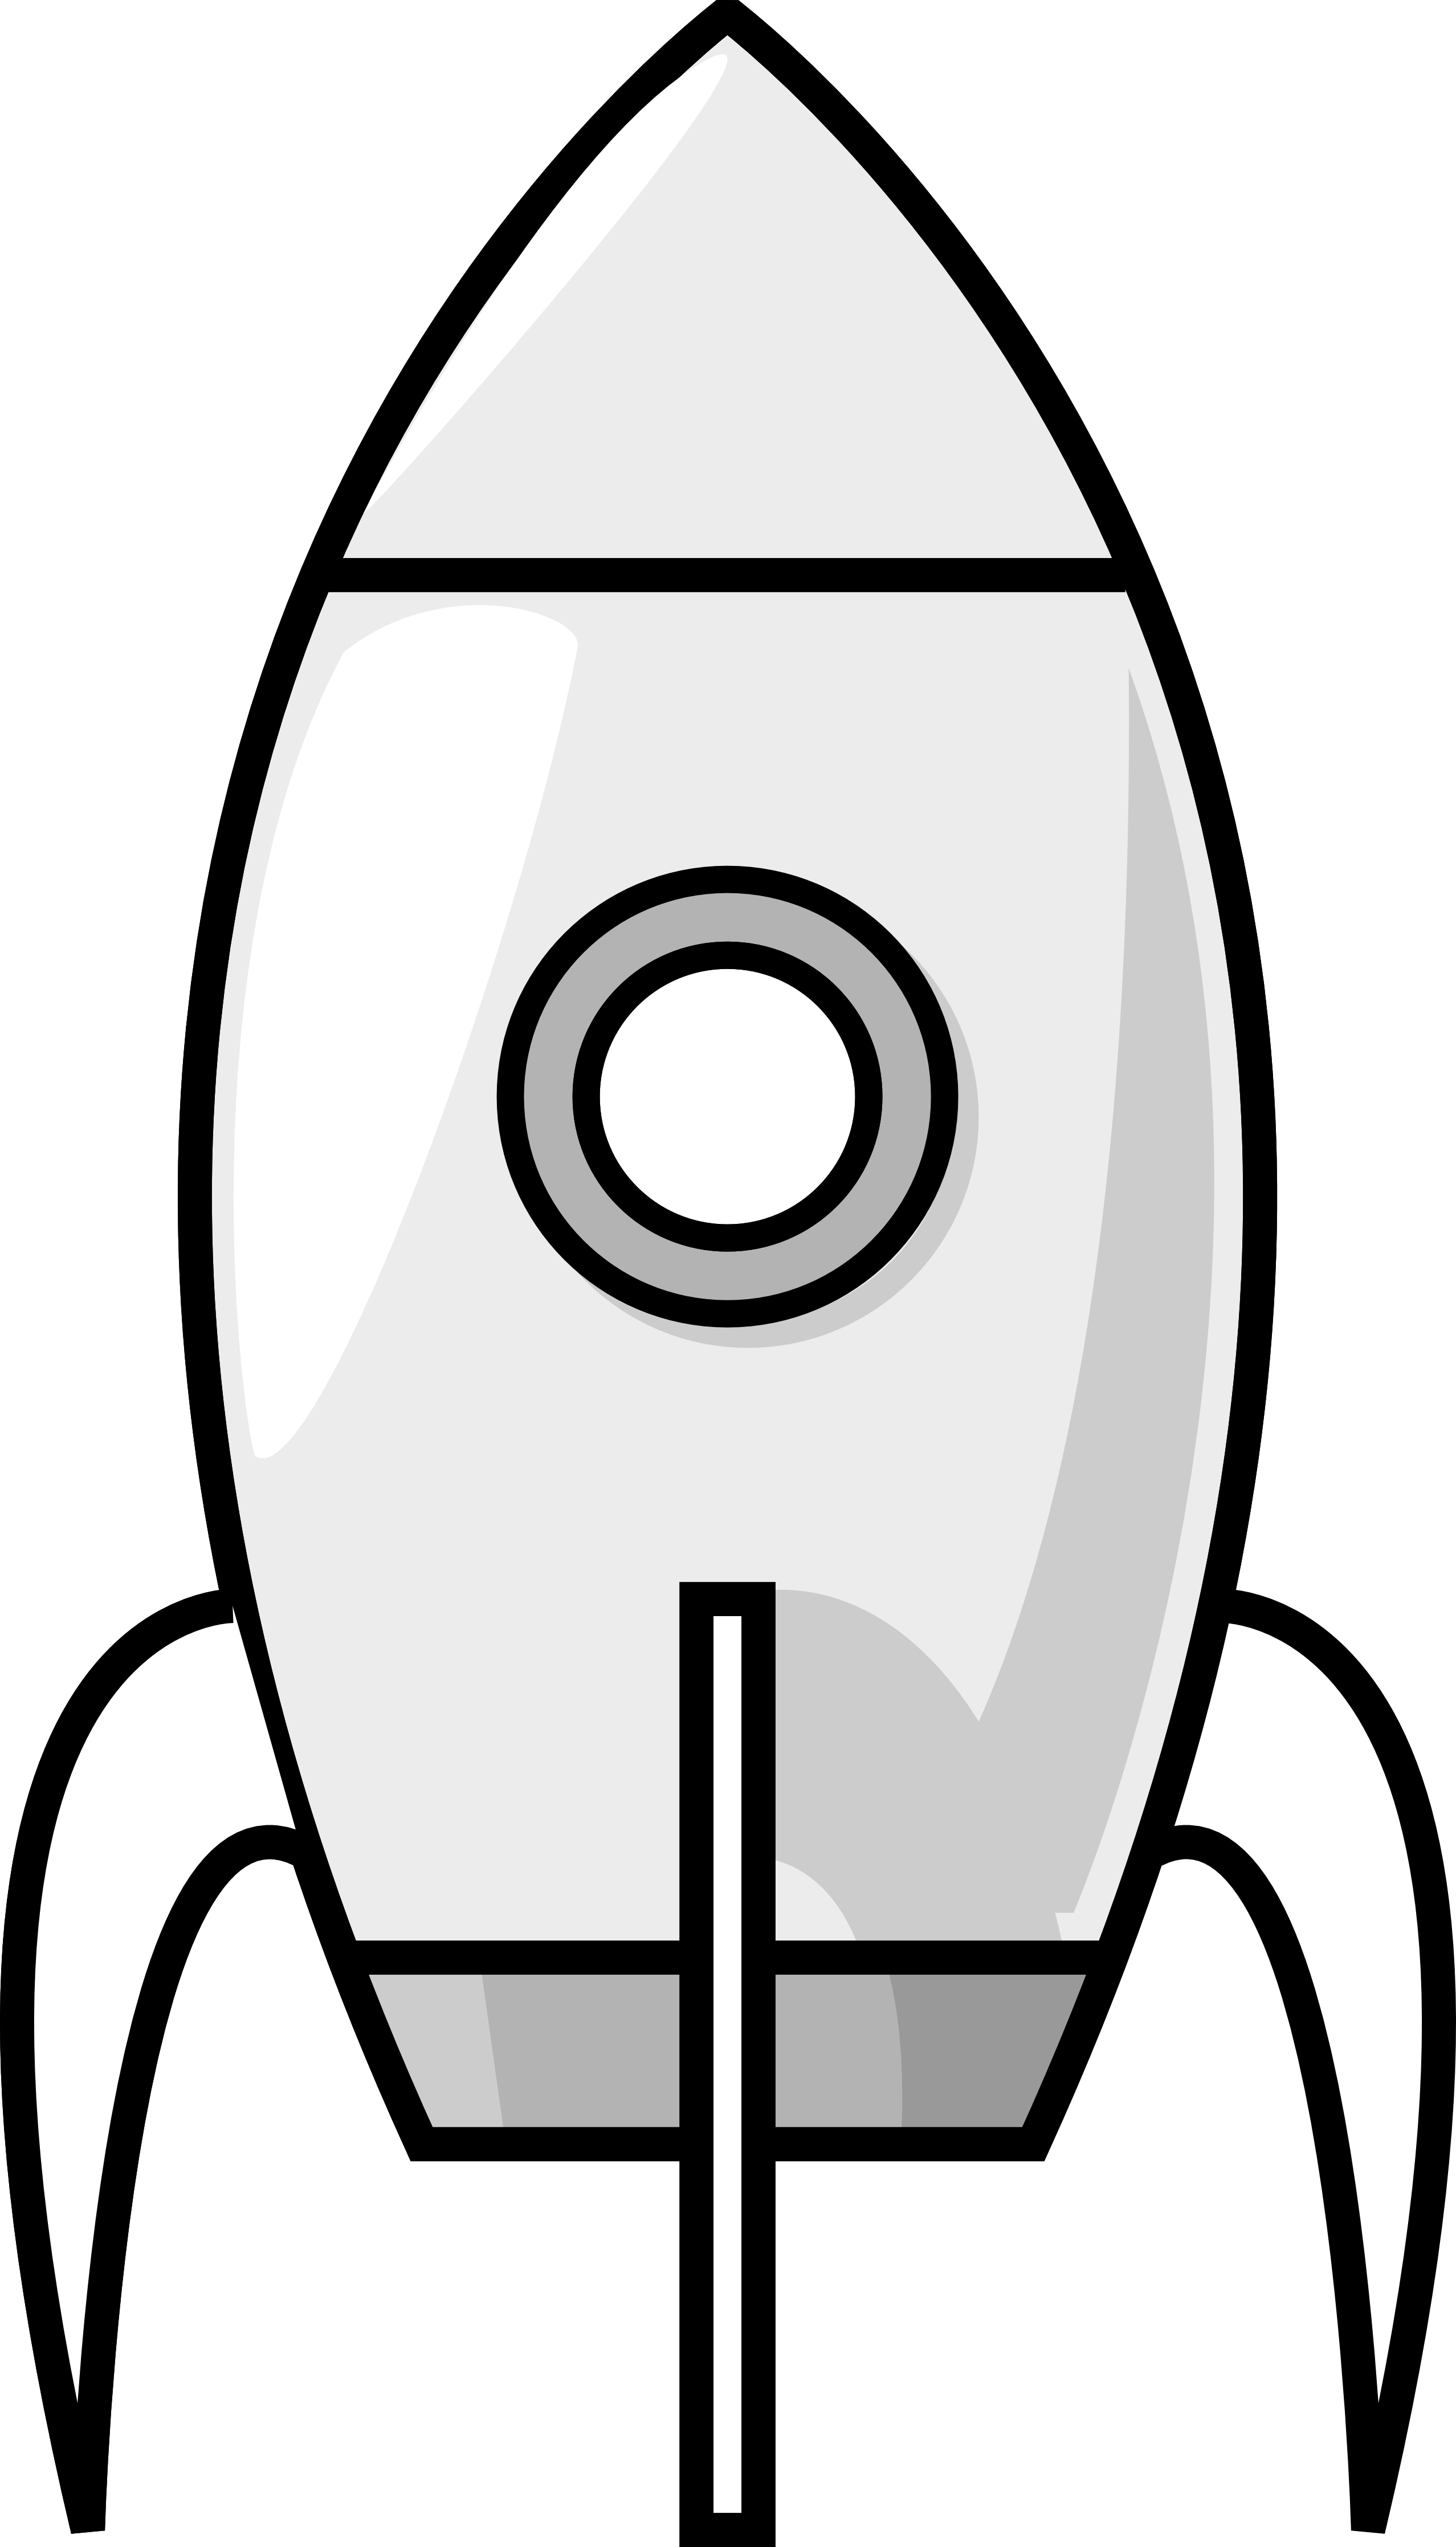 Rocket Clipart Black And White Clipart Panda Free